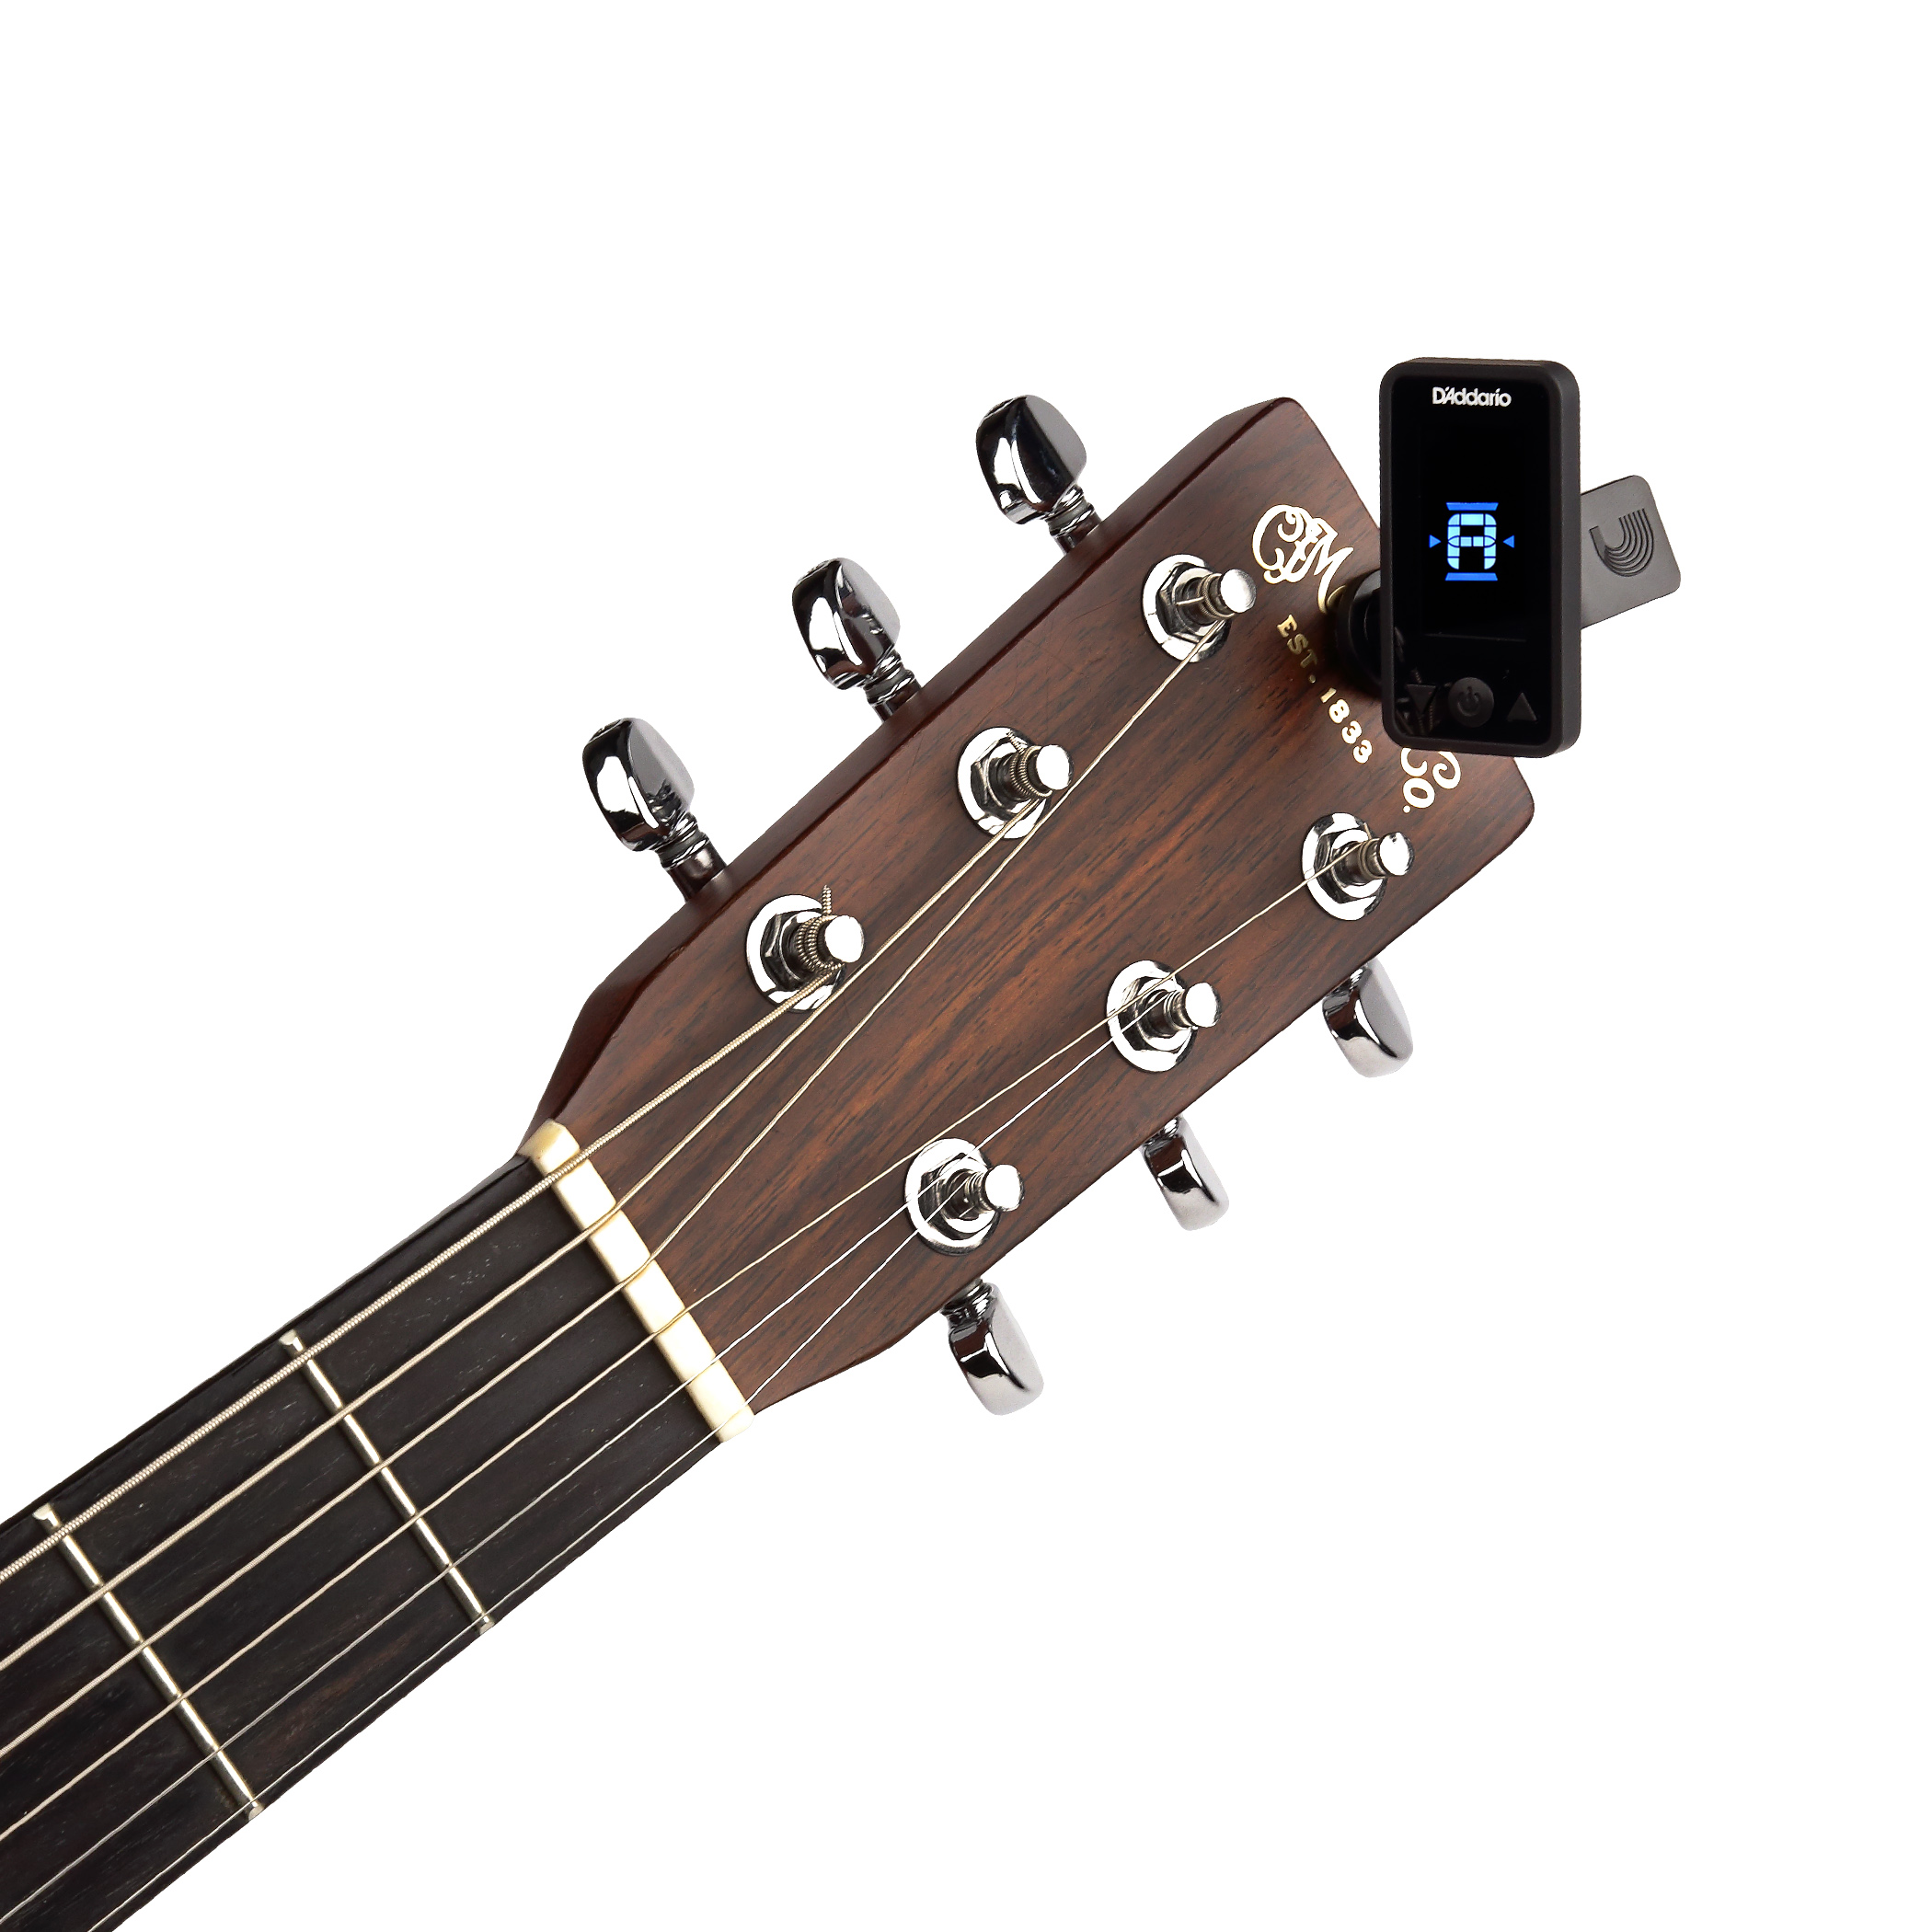 D'Addario Eclipse Headstock Tuner Black